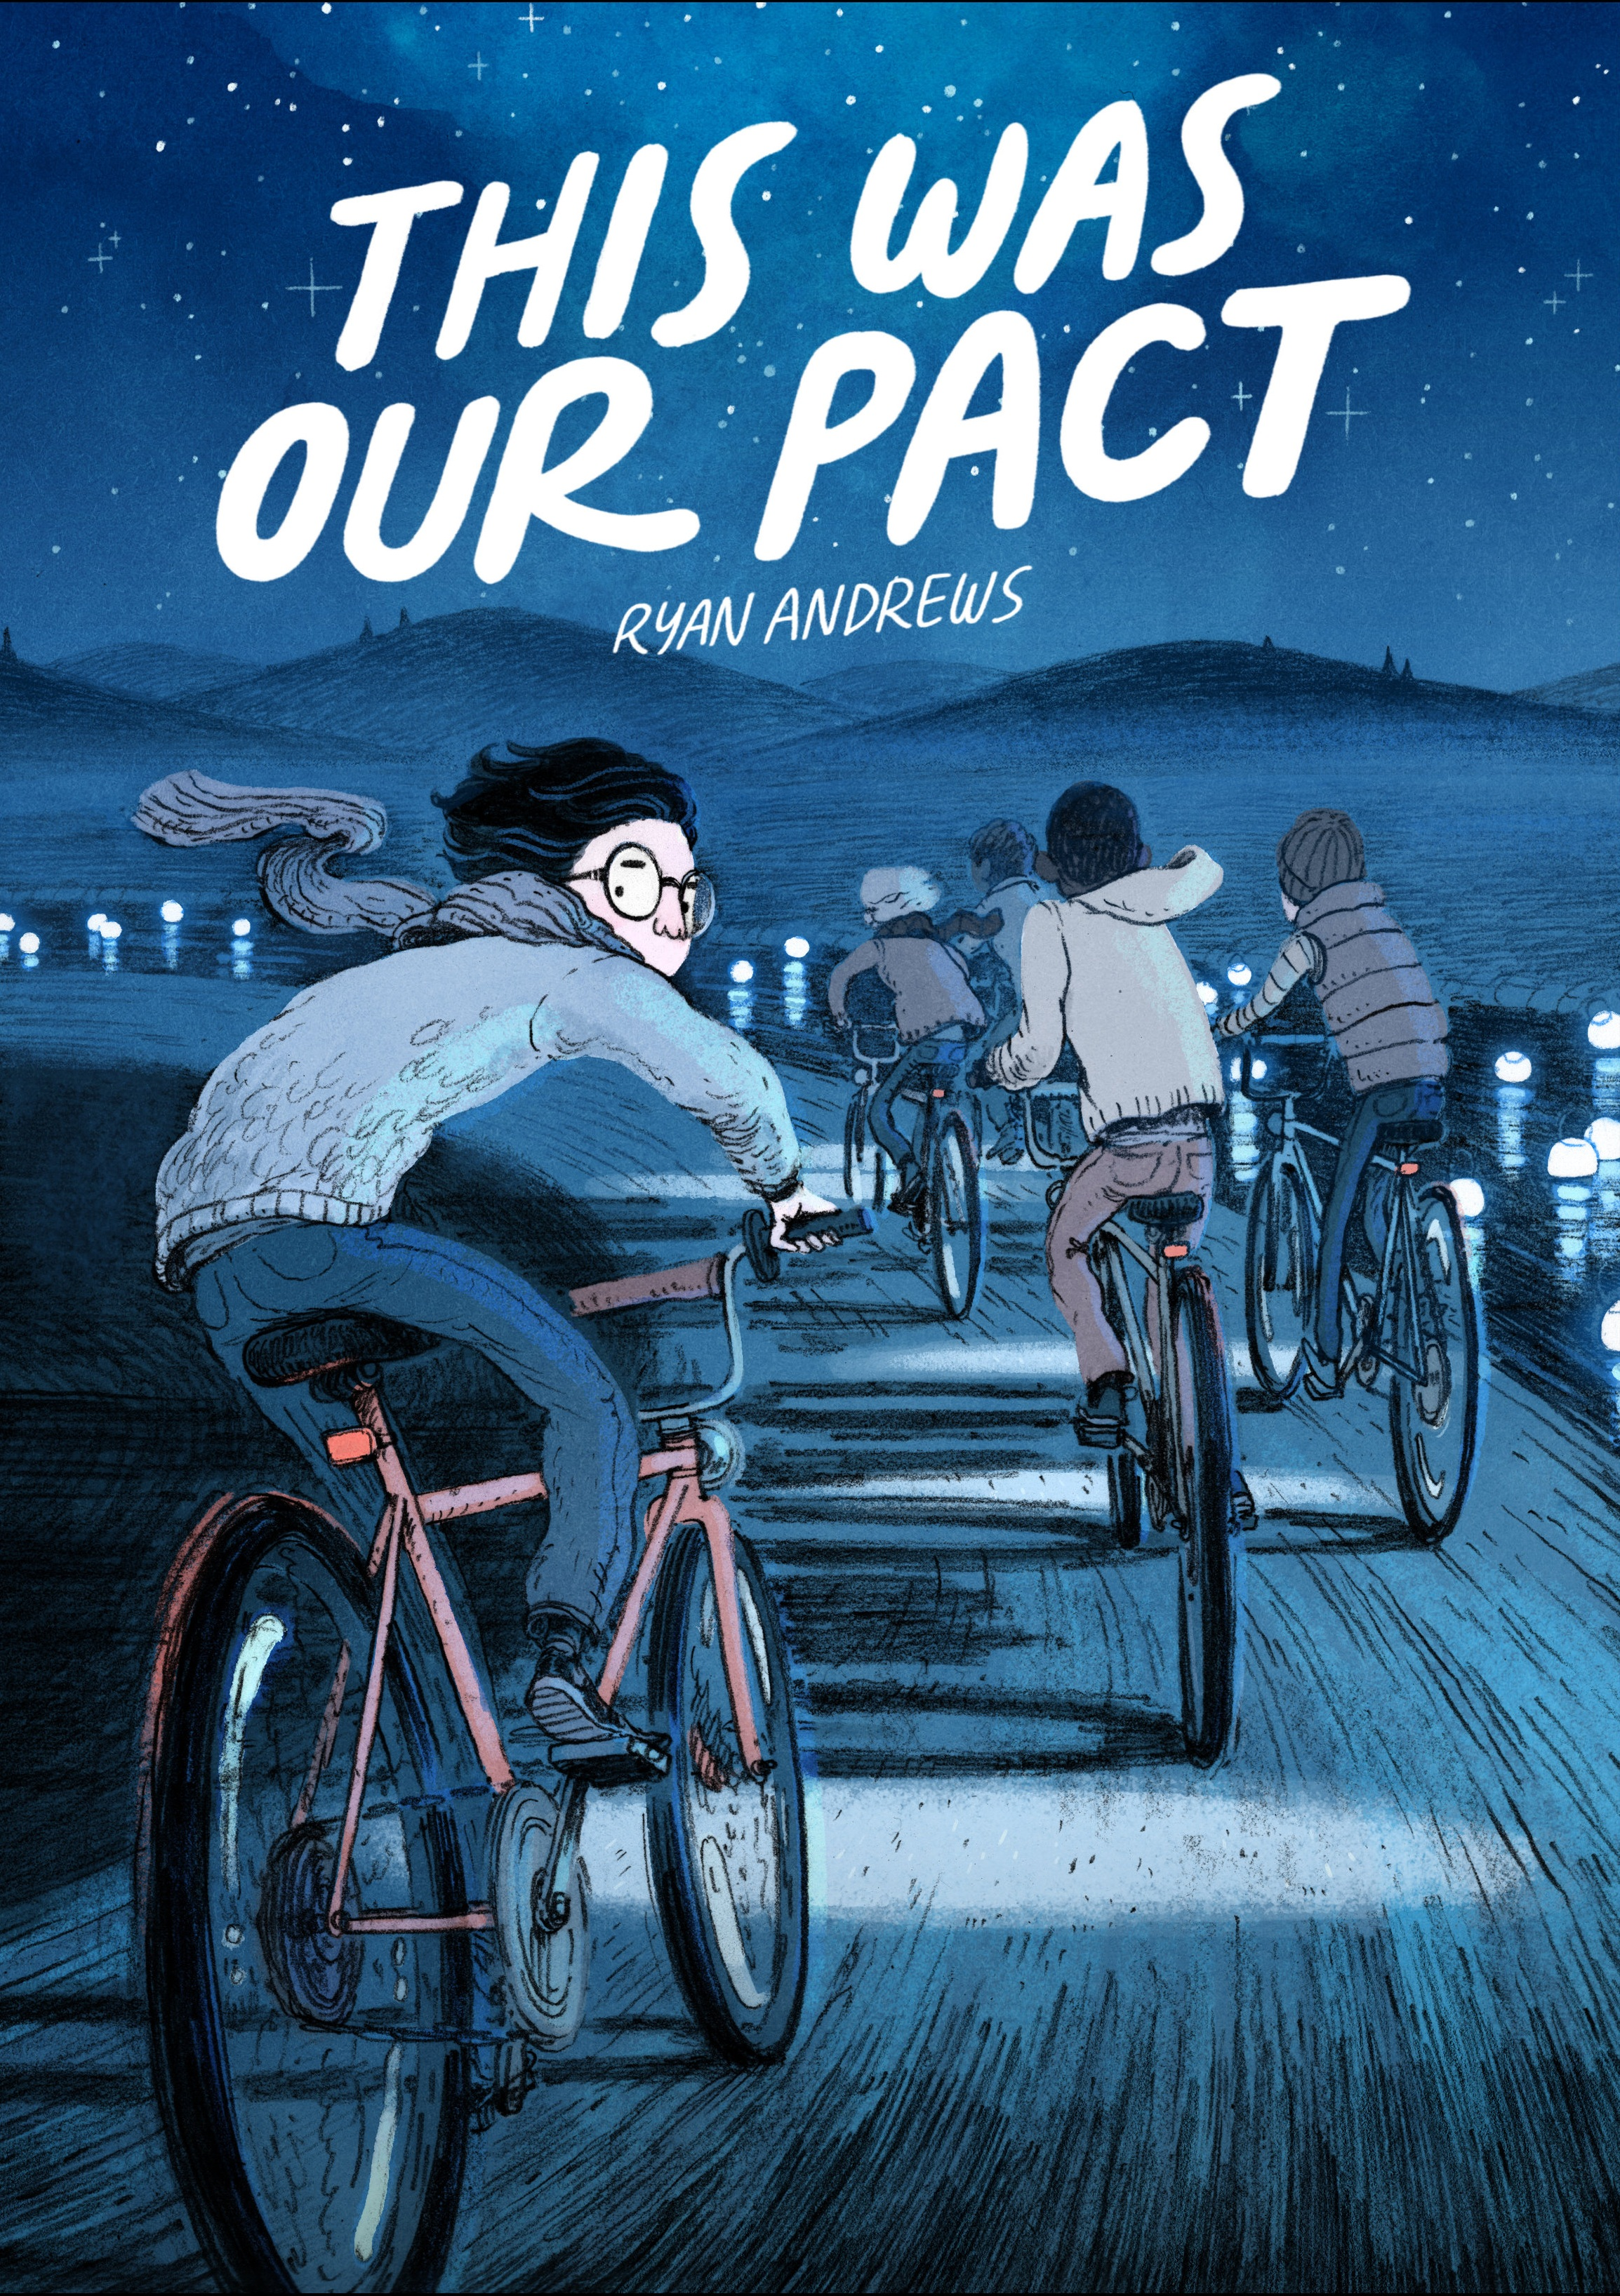 THIS WAS OUR PACT by Ryan Andrews (First Second, June 2019)